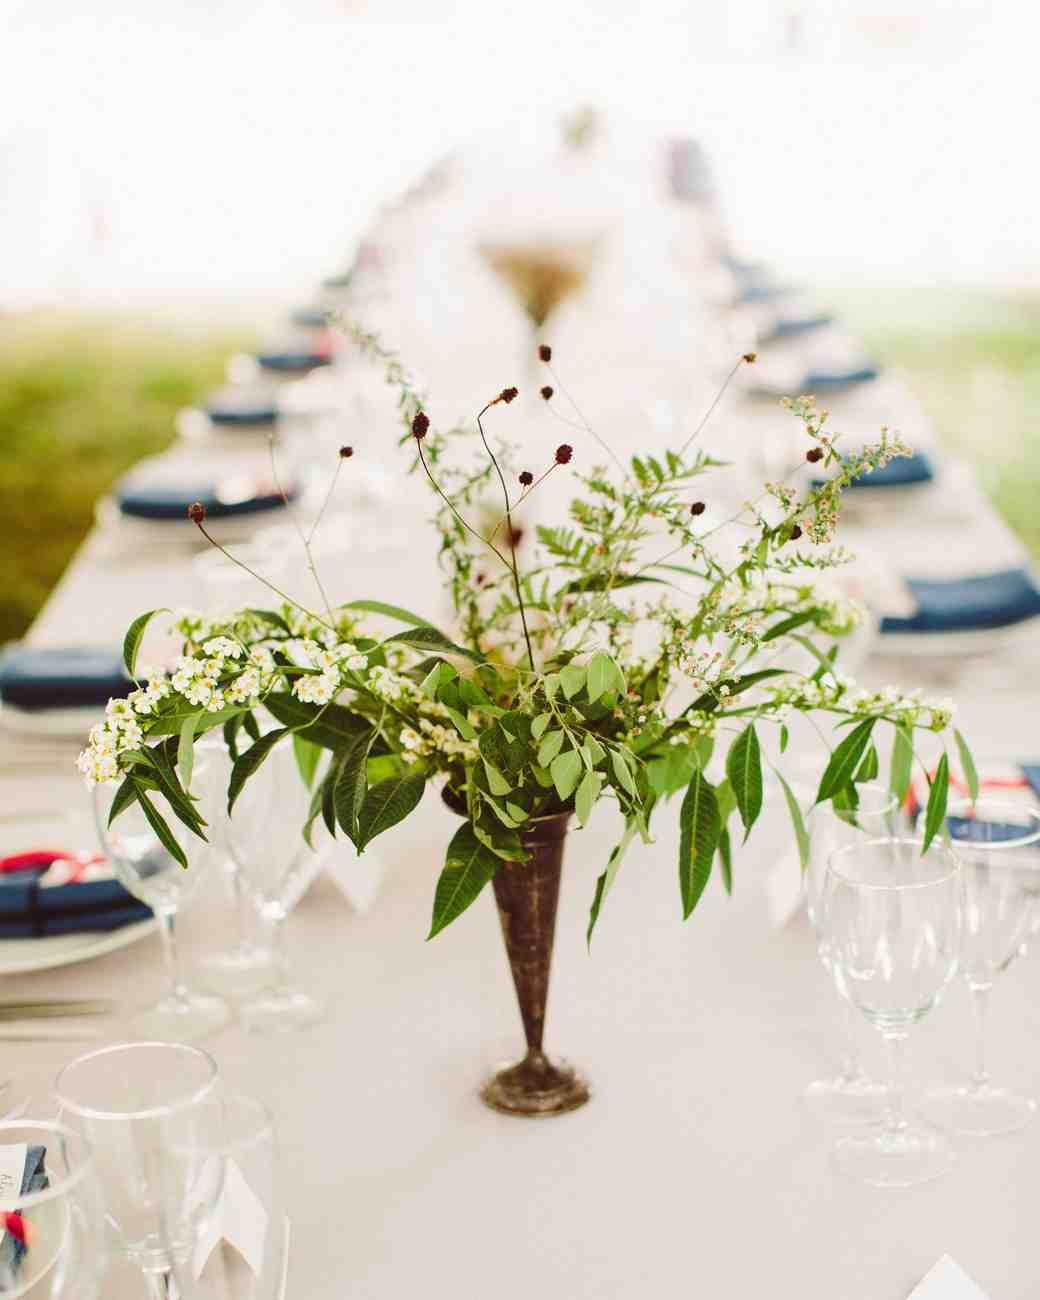 Simple White and Green Centerpiece